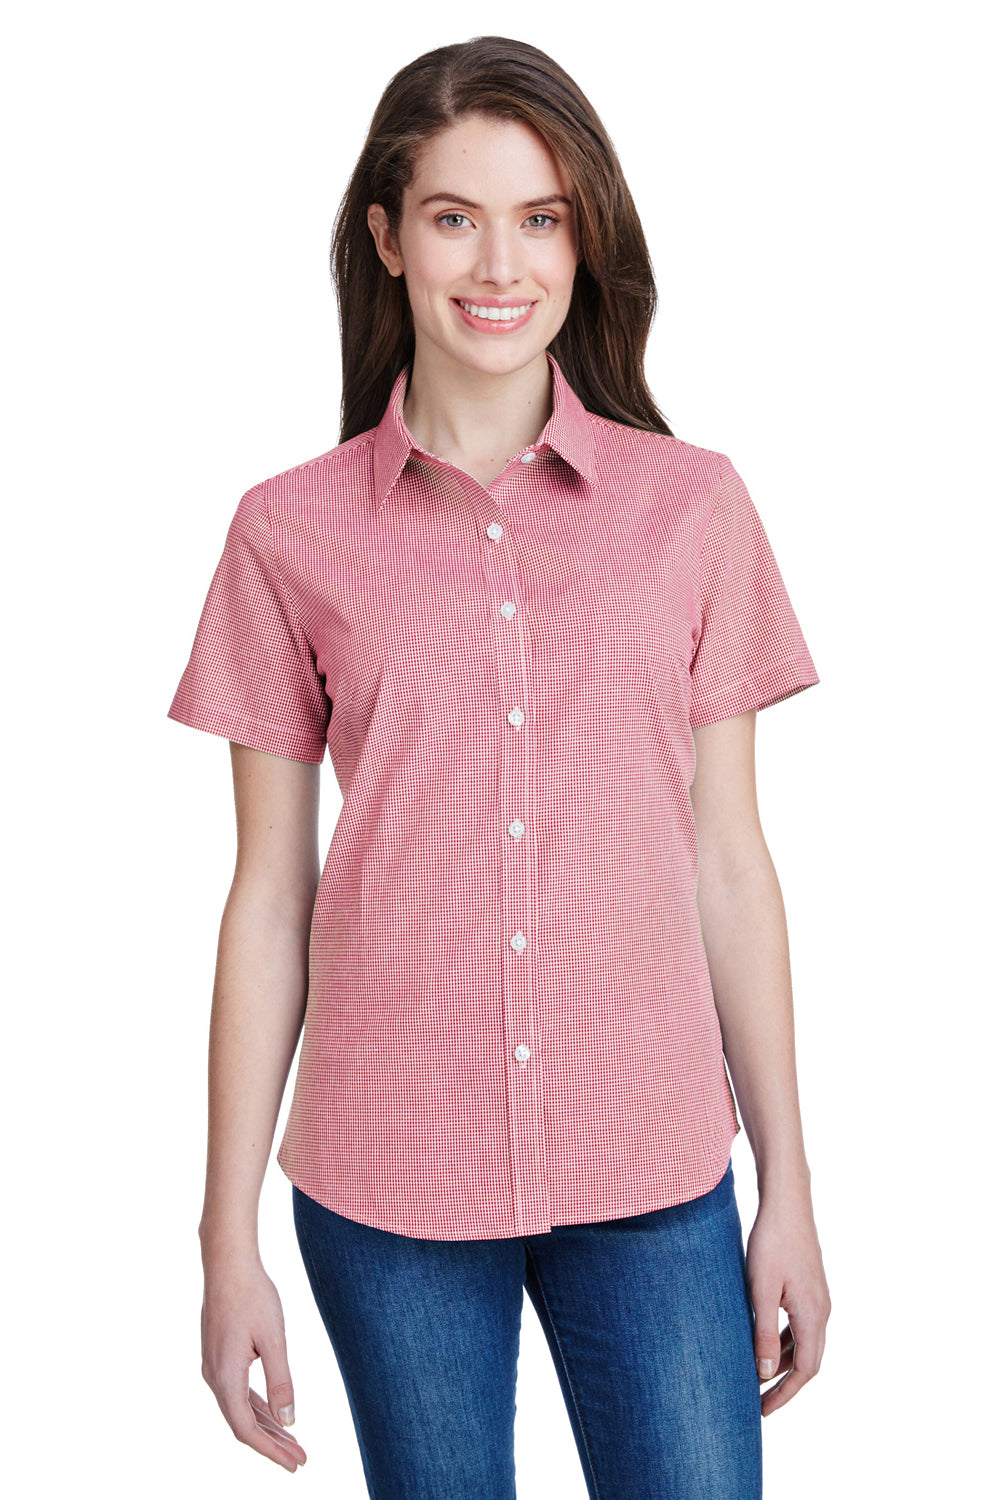 Artisan Collection RP321 Womens Microcheck Gingham Short Sleeve Button Down Shirt Red/White Front